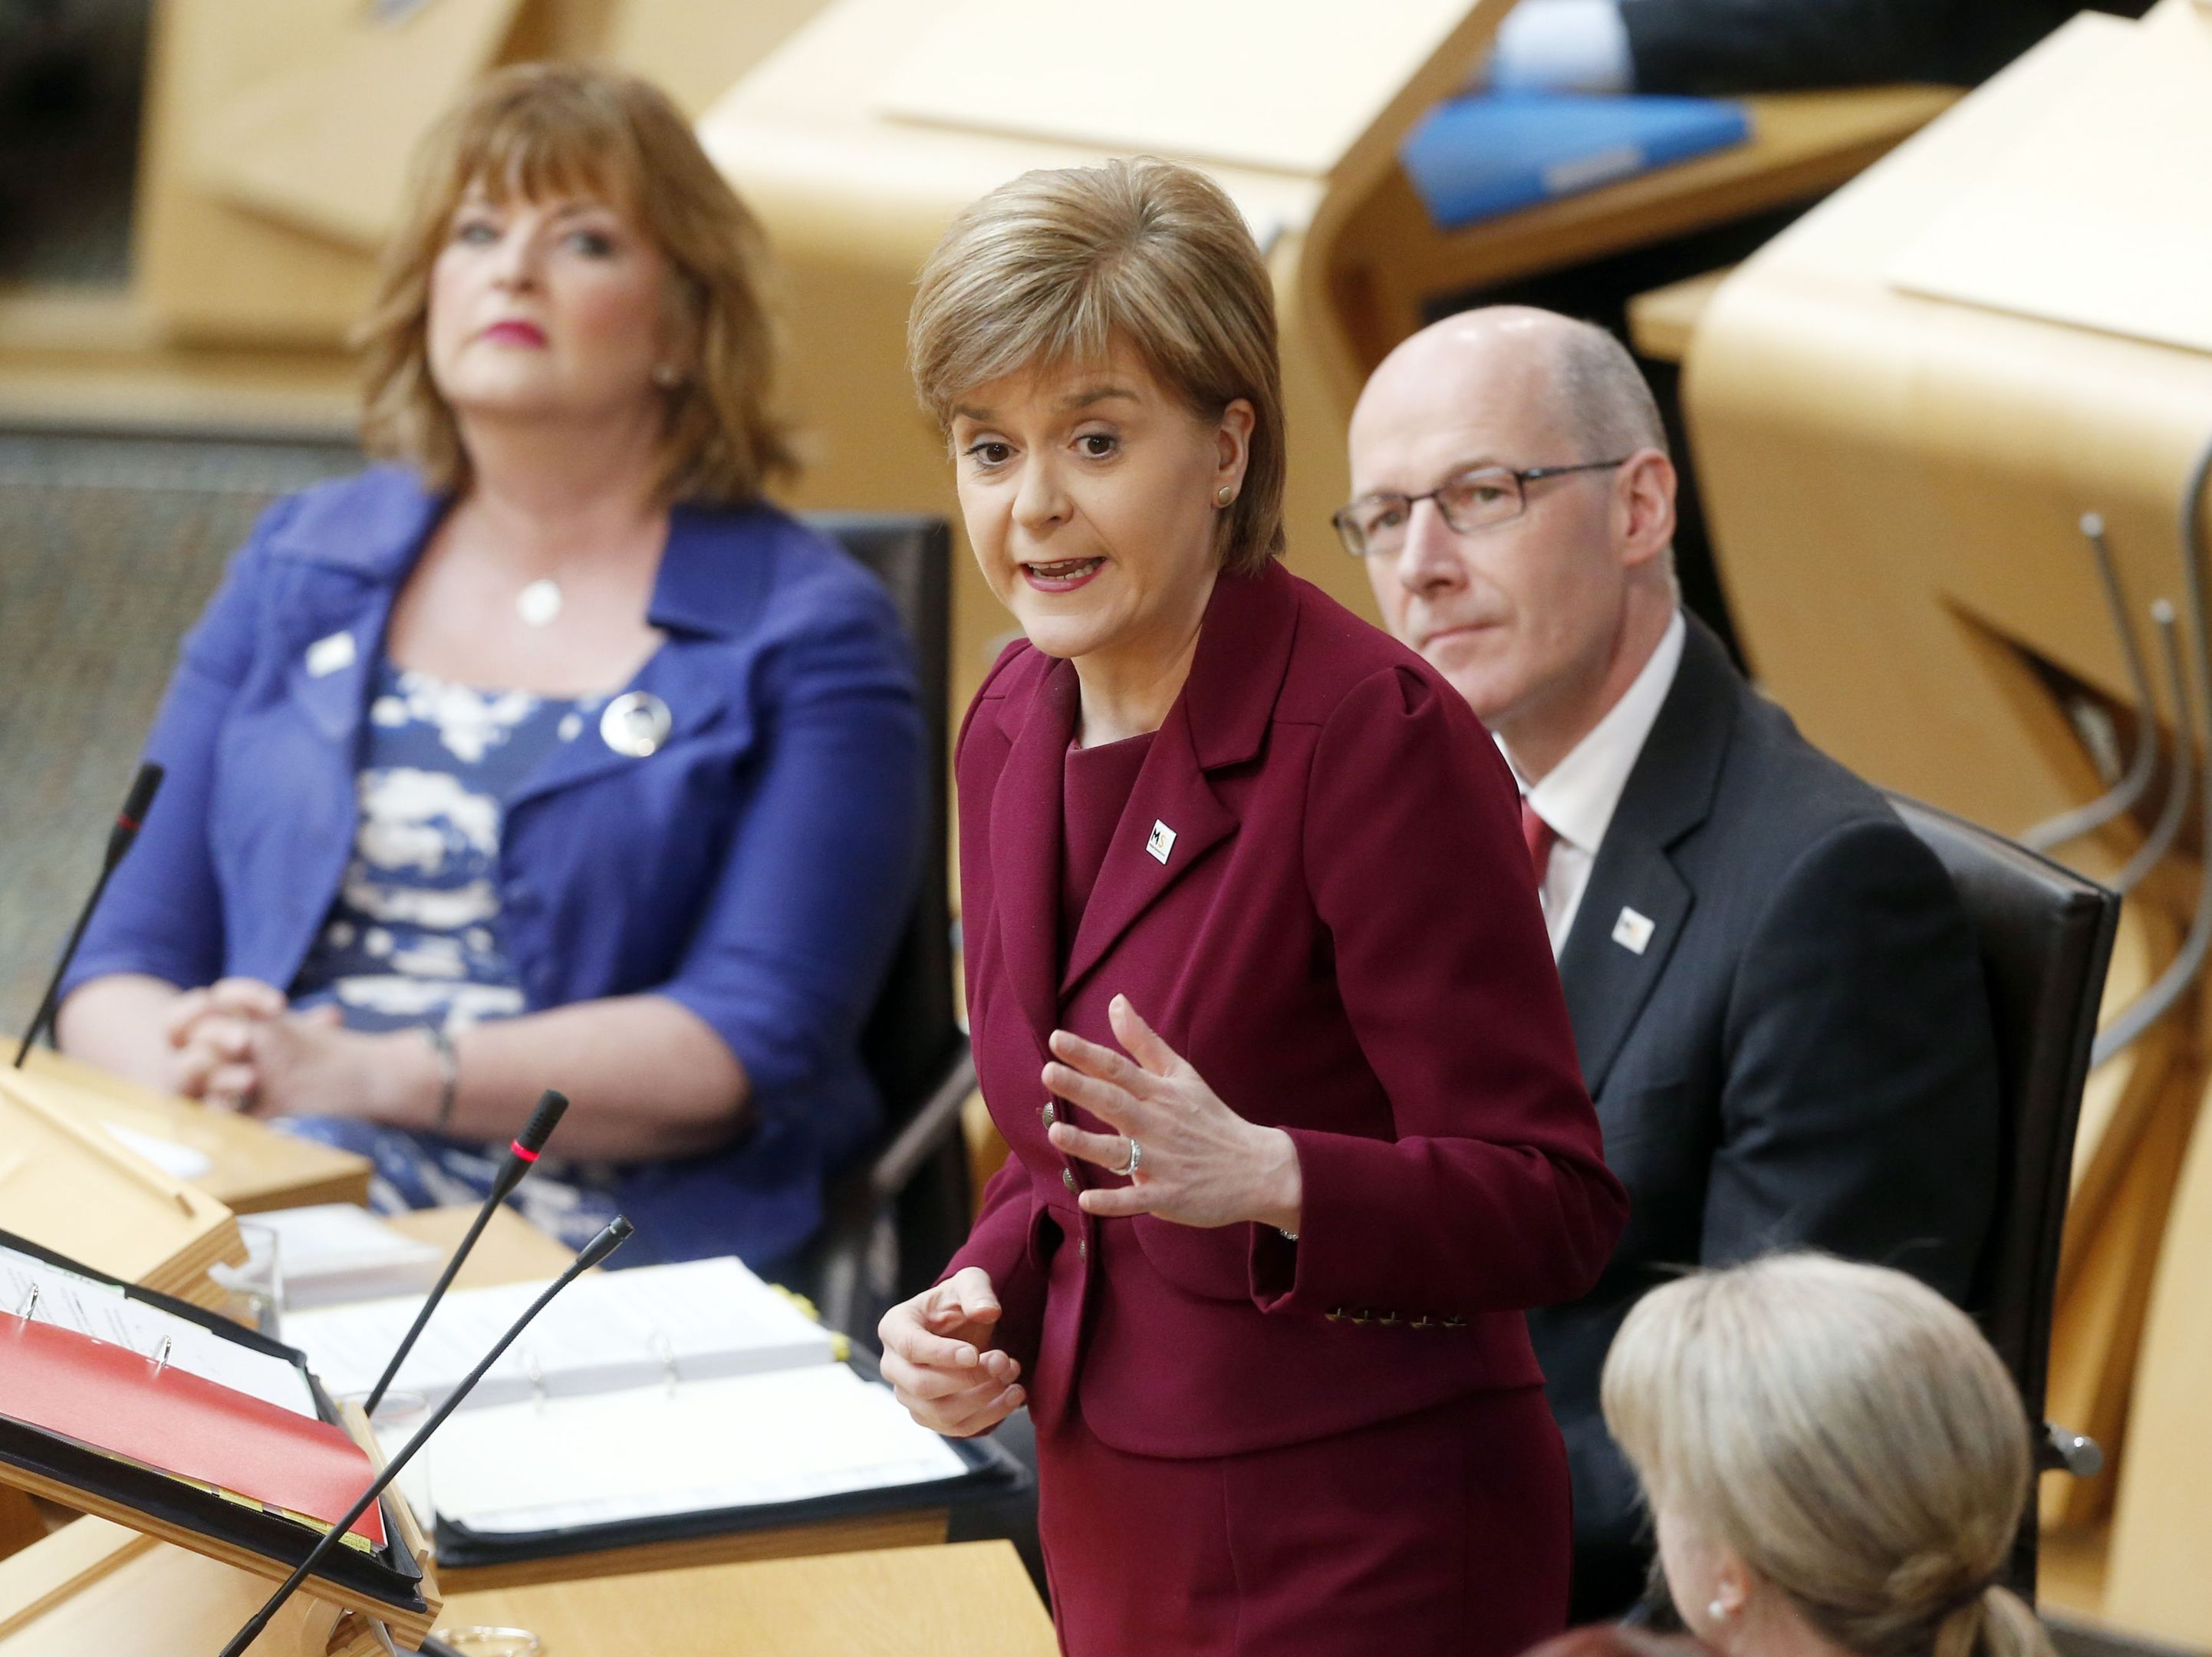 First Minister Nicola Sturgeon during First Minister's Questions at the Scottish Parliament in Edinburgh (Danny Lawson/PA)